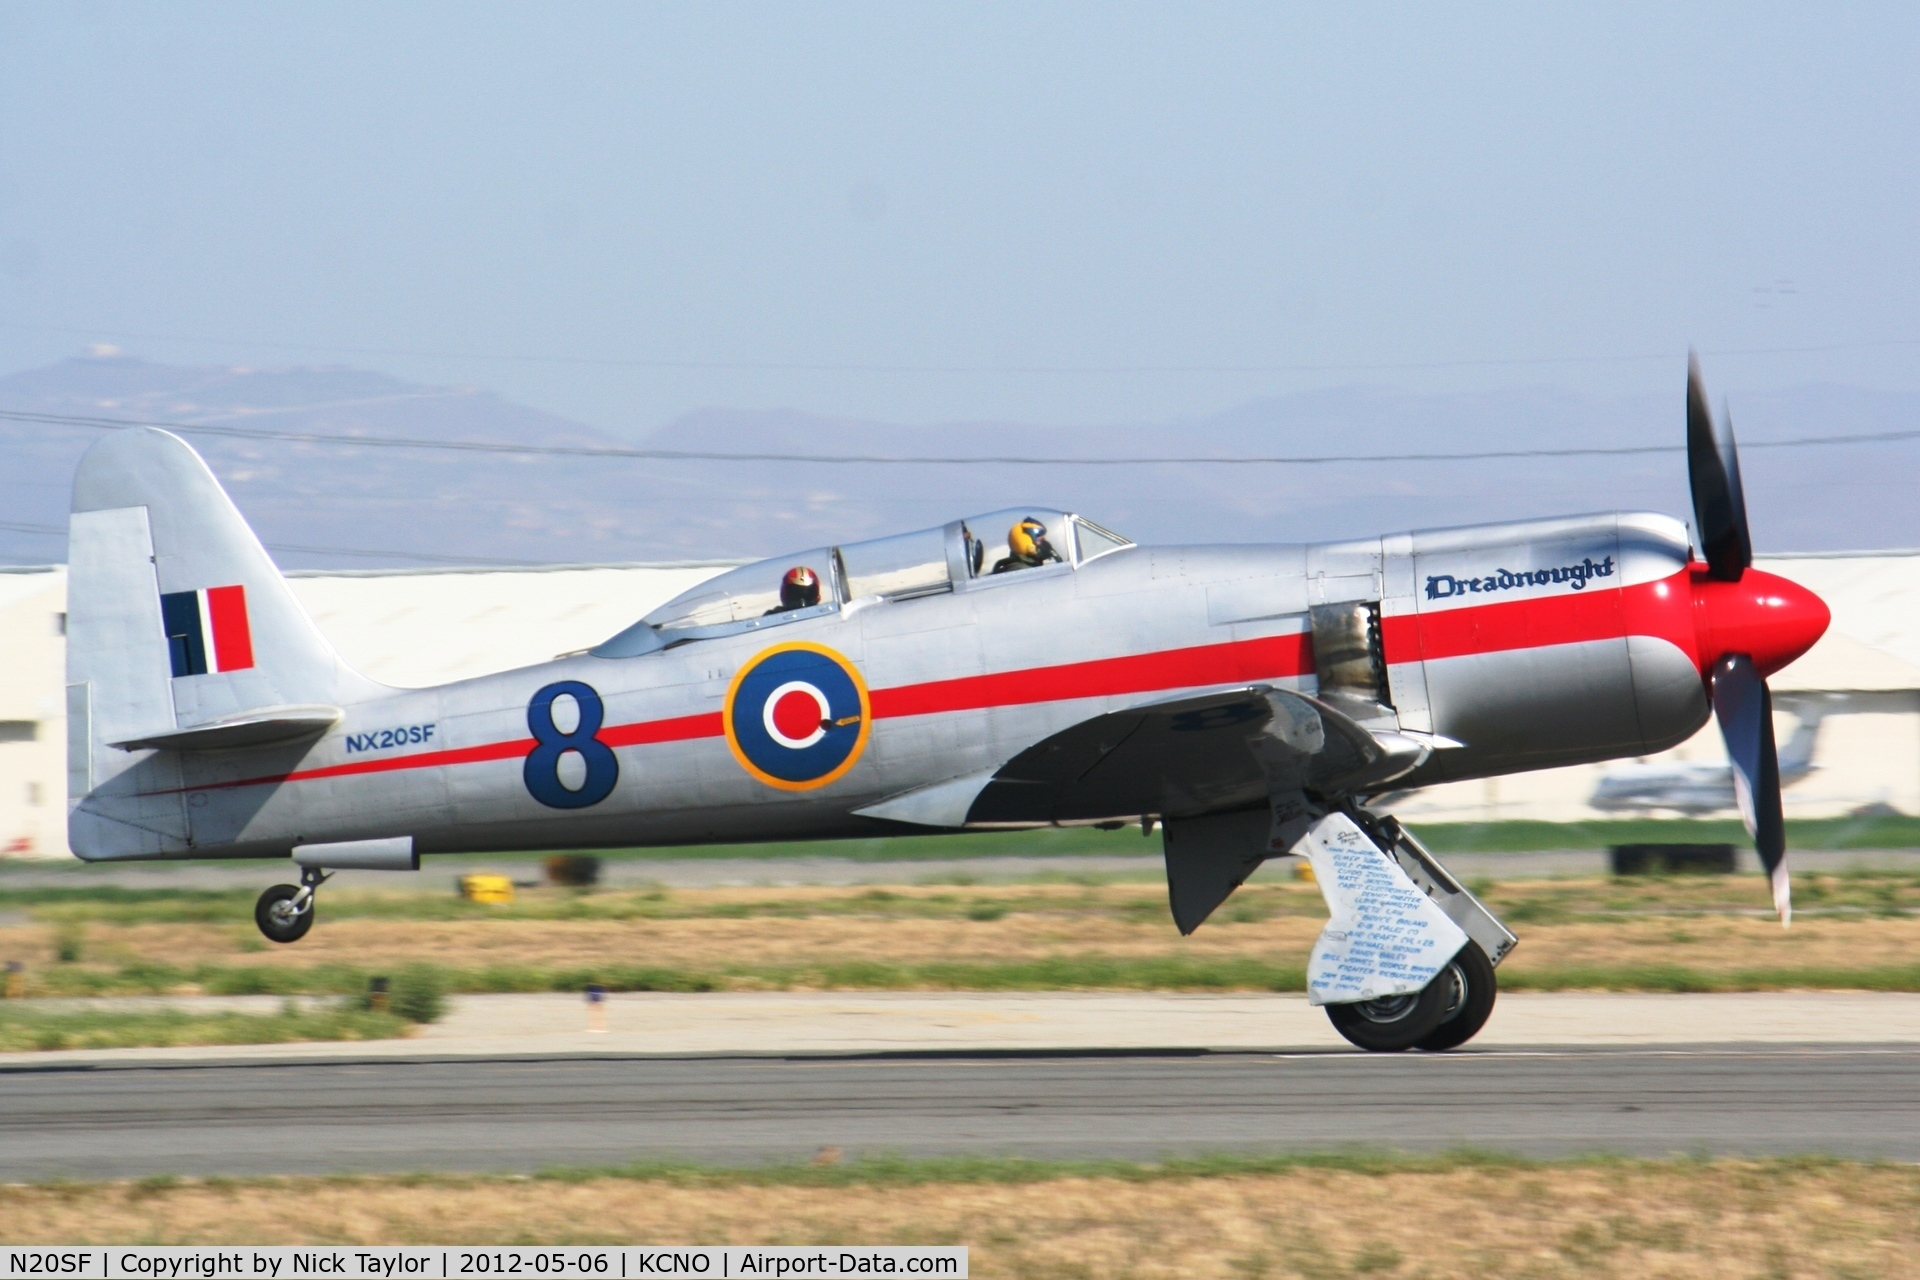 N20SF, 1956 Hawker Sea Fury T.20 C/N ES.9505, Dreadnought departing for home